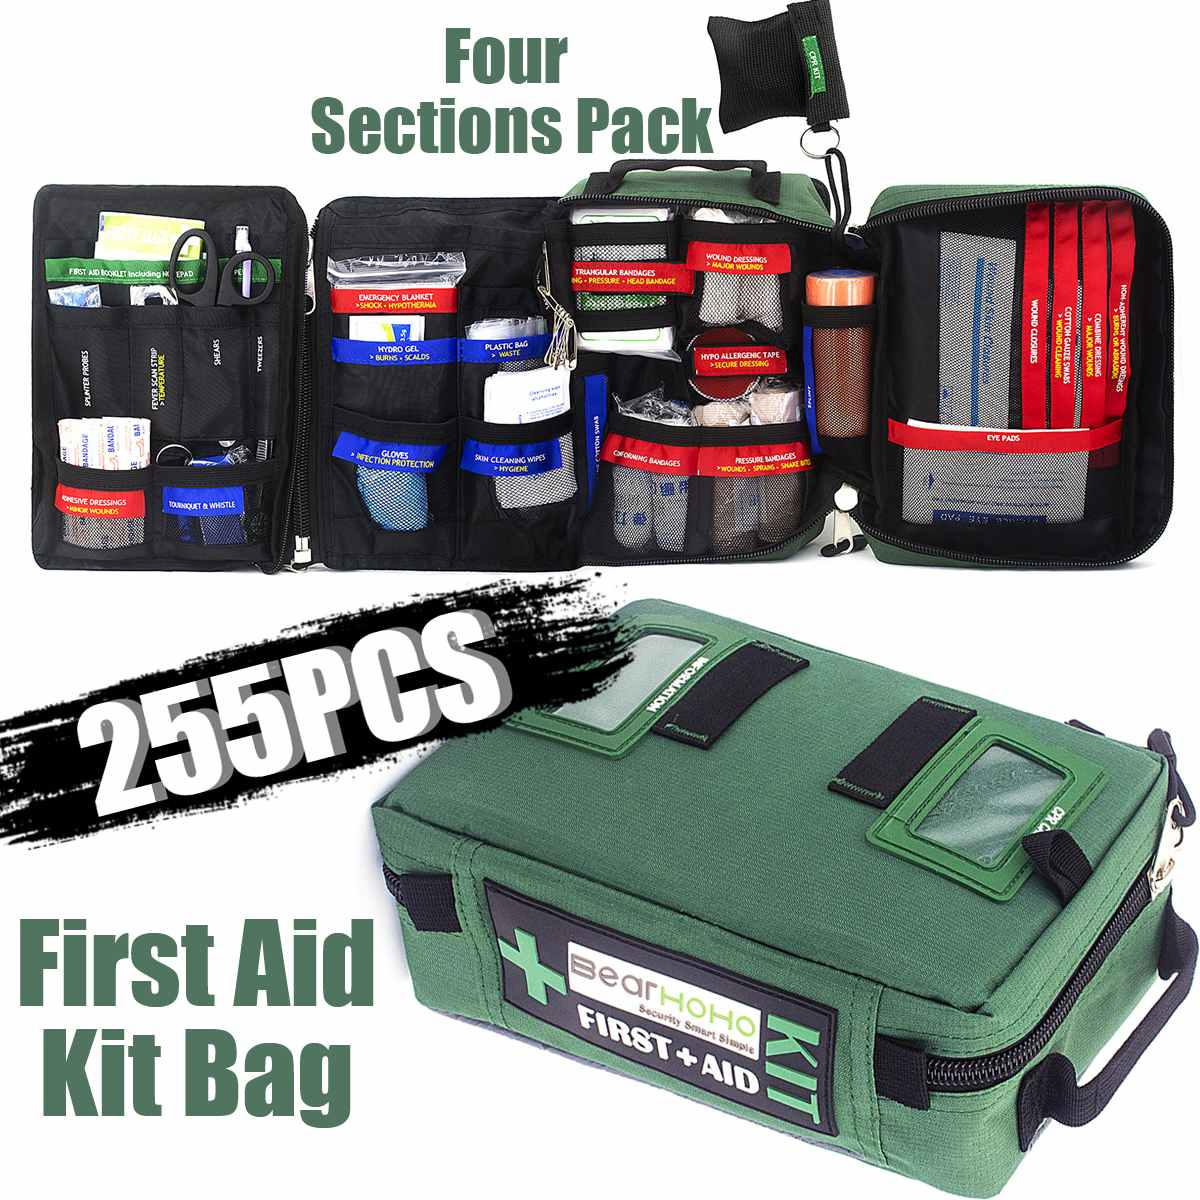 255Pcs First Aid Kit Bag 255-Piece Lightweight Emergency Medical Rescue Outdoors Car Luggage School Hiking Survival Kits